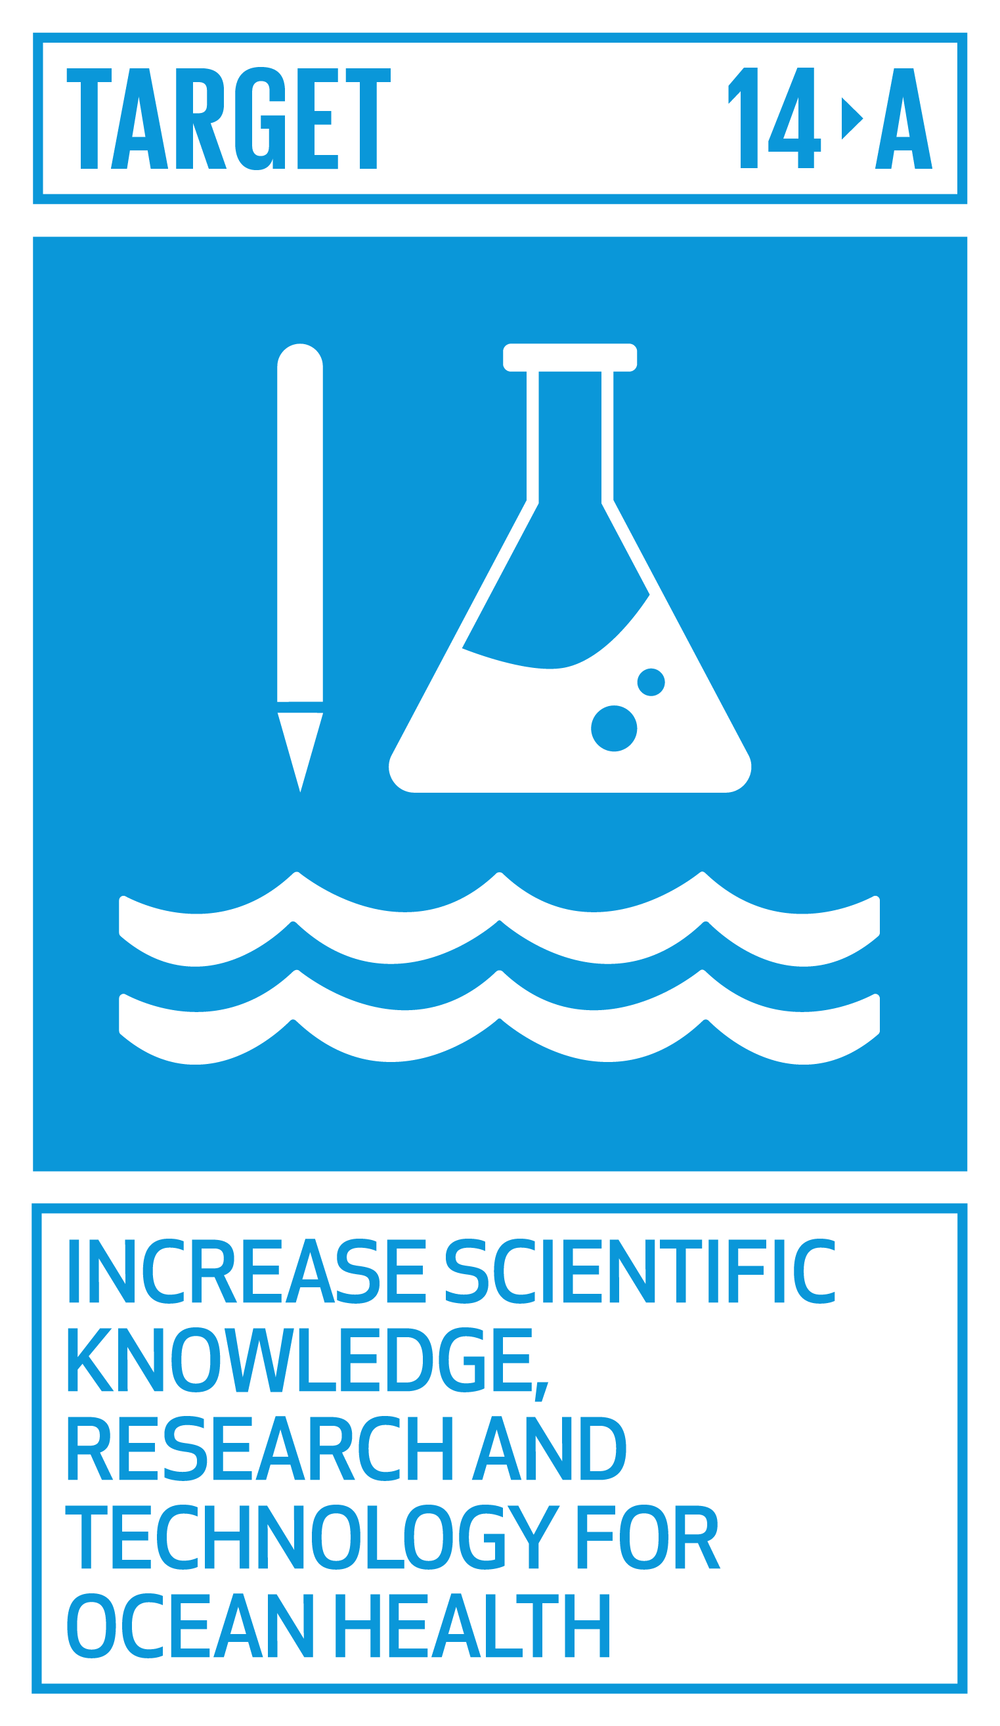 Increase scientific knowledge, develop research capacity and transfer marine technology, taking into account the Intergovernmental Oceanographic Commission Criteria and Guidelines on the Transfer of Marine Technology, in order to improve ocean health and to enhance the contribution of marine biodiversity to the development of developing countries, in particular small island developing States and least developed countries.   INDICATOR    14.a.1  Proportion of total research budget allocated to research in the field of marine technology